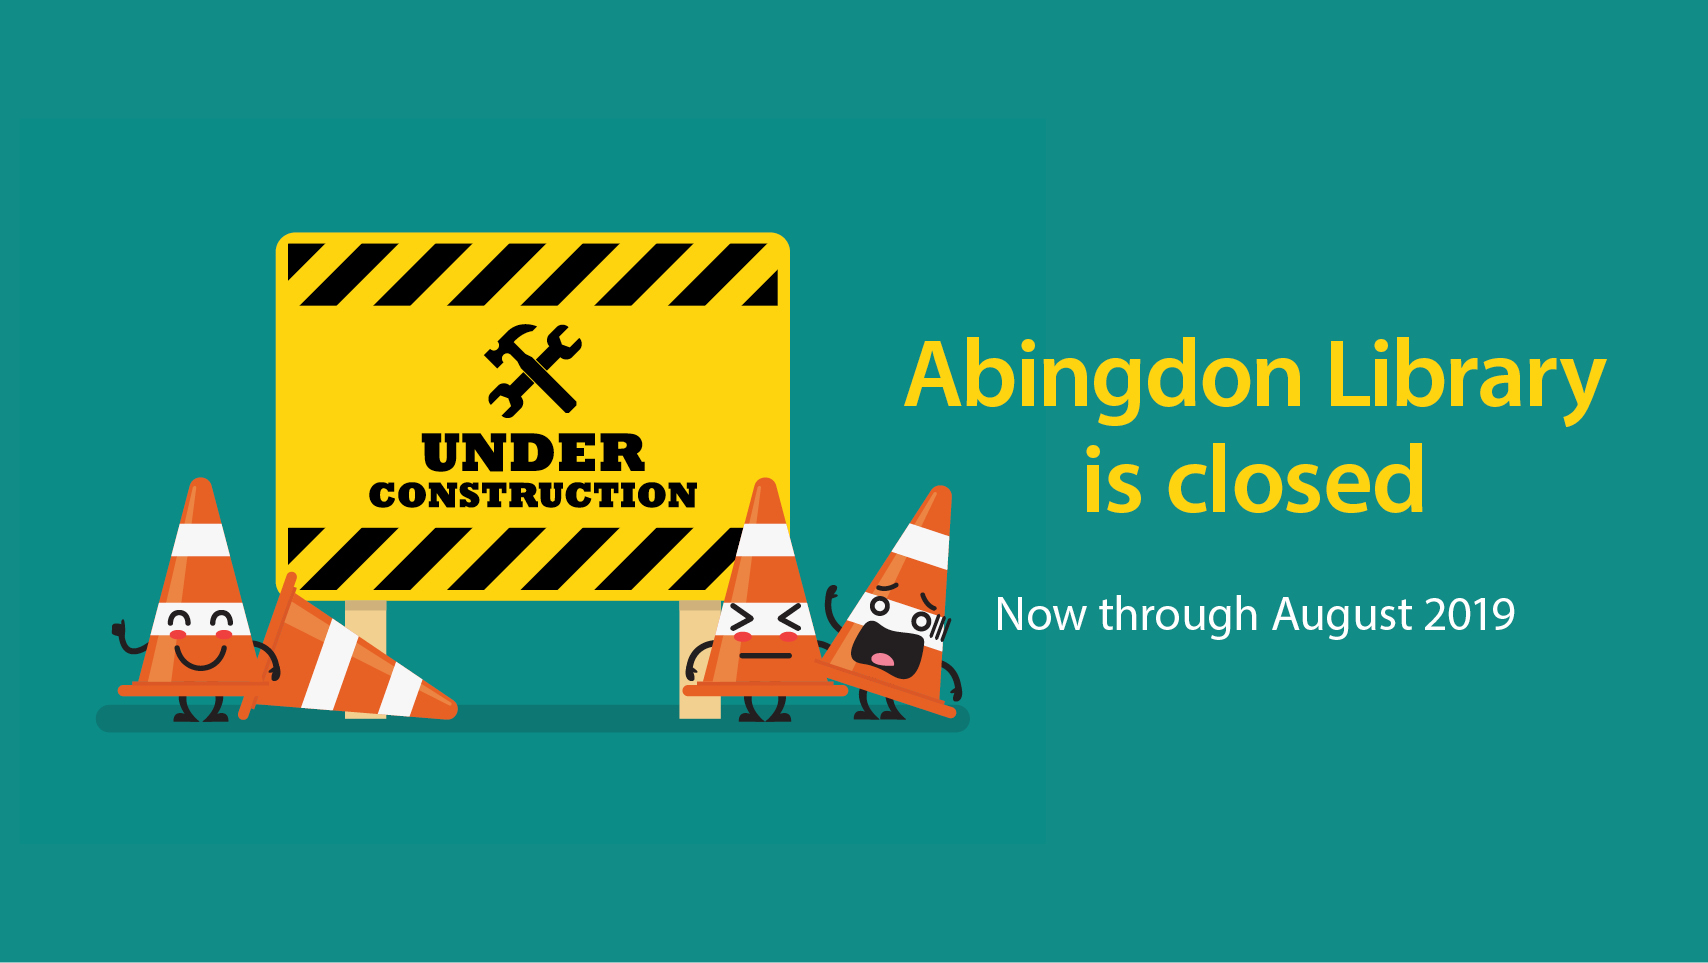 Abingdon Library Closed